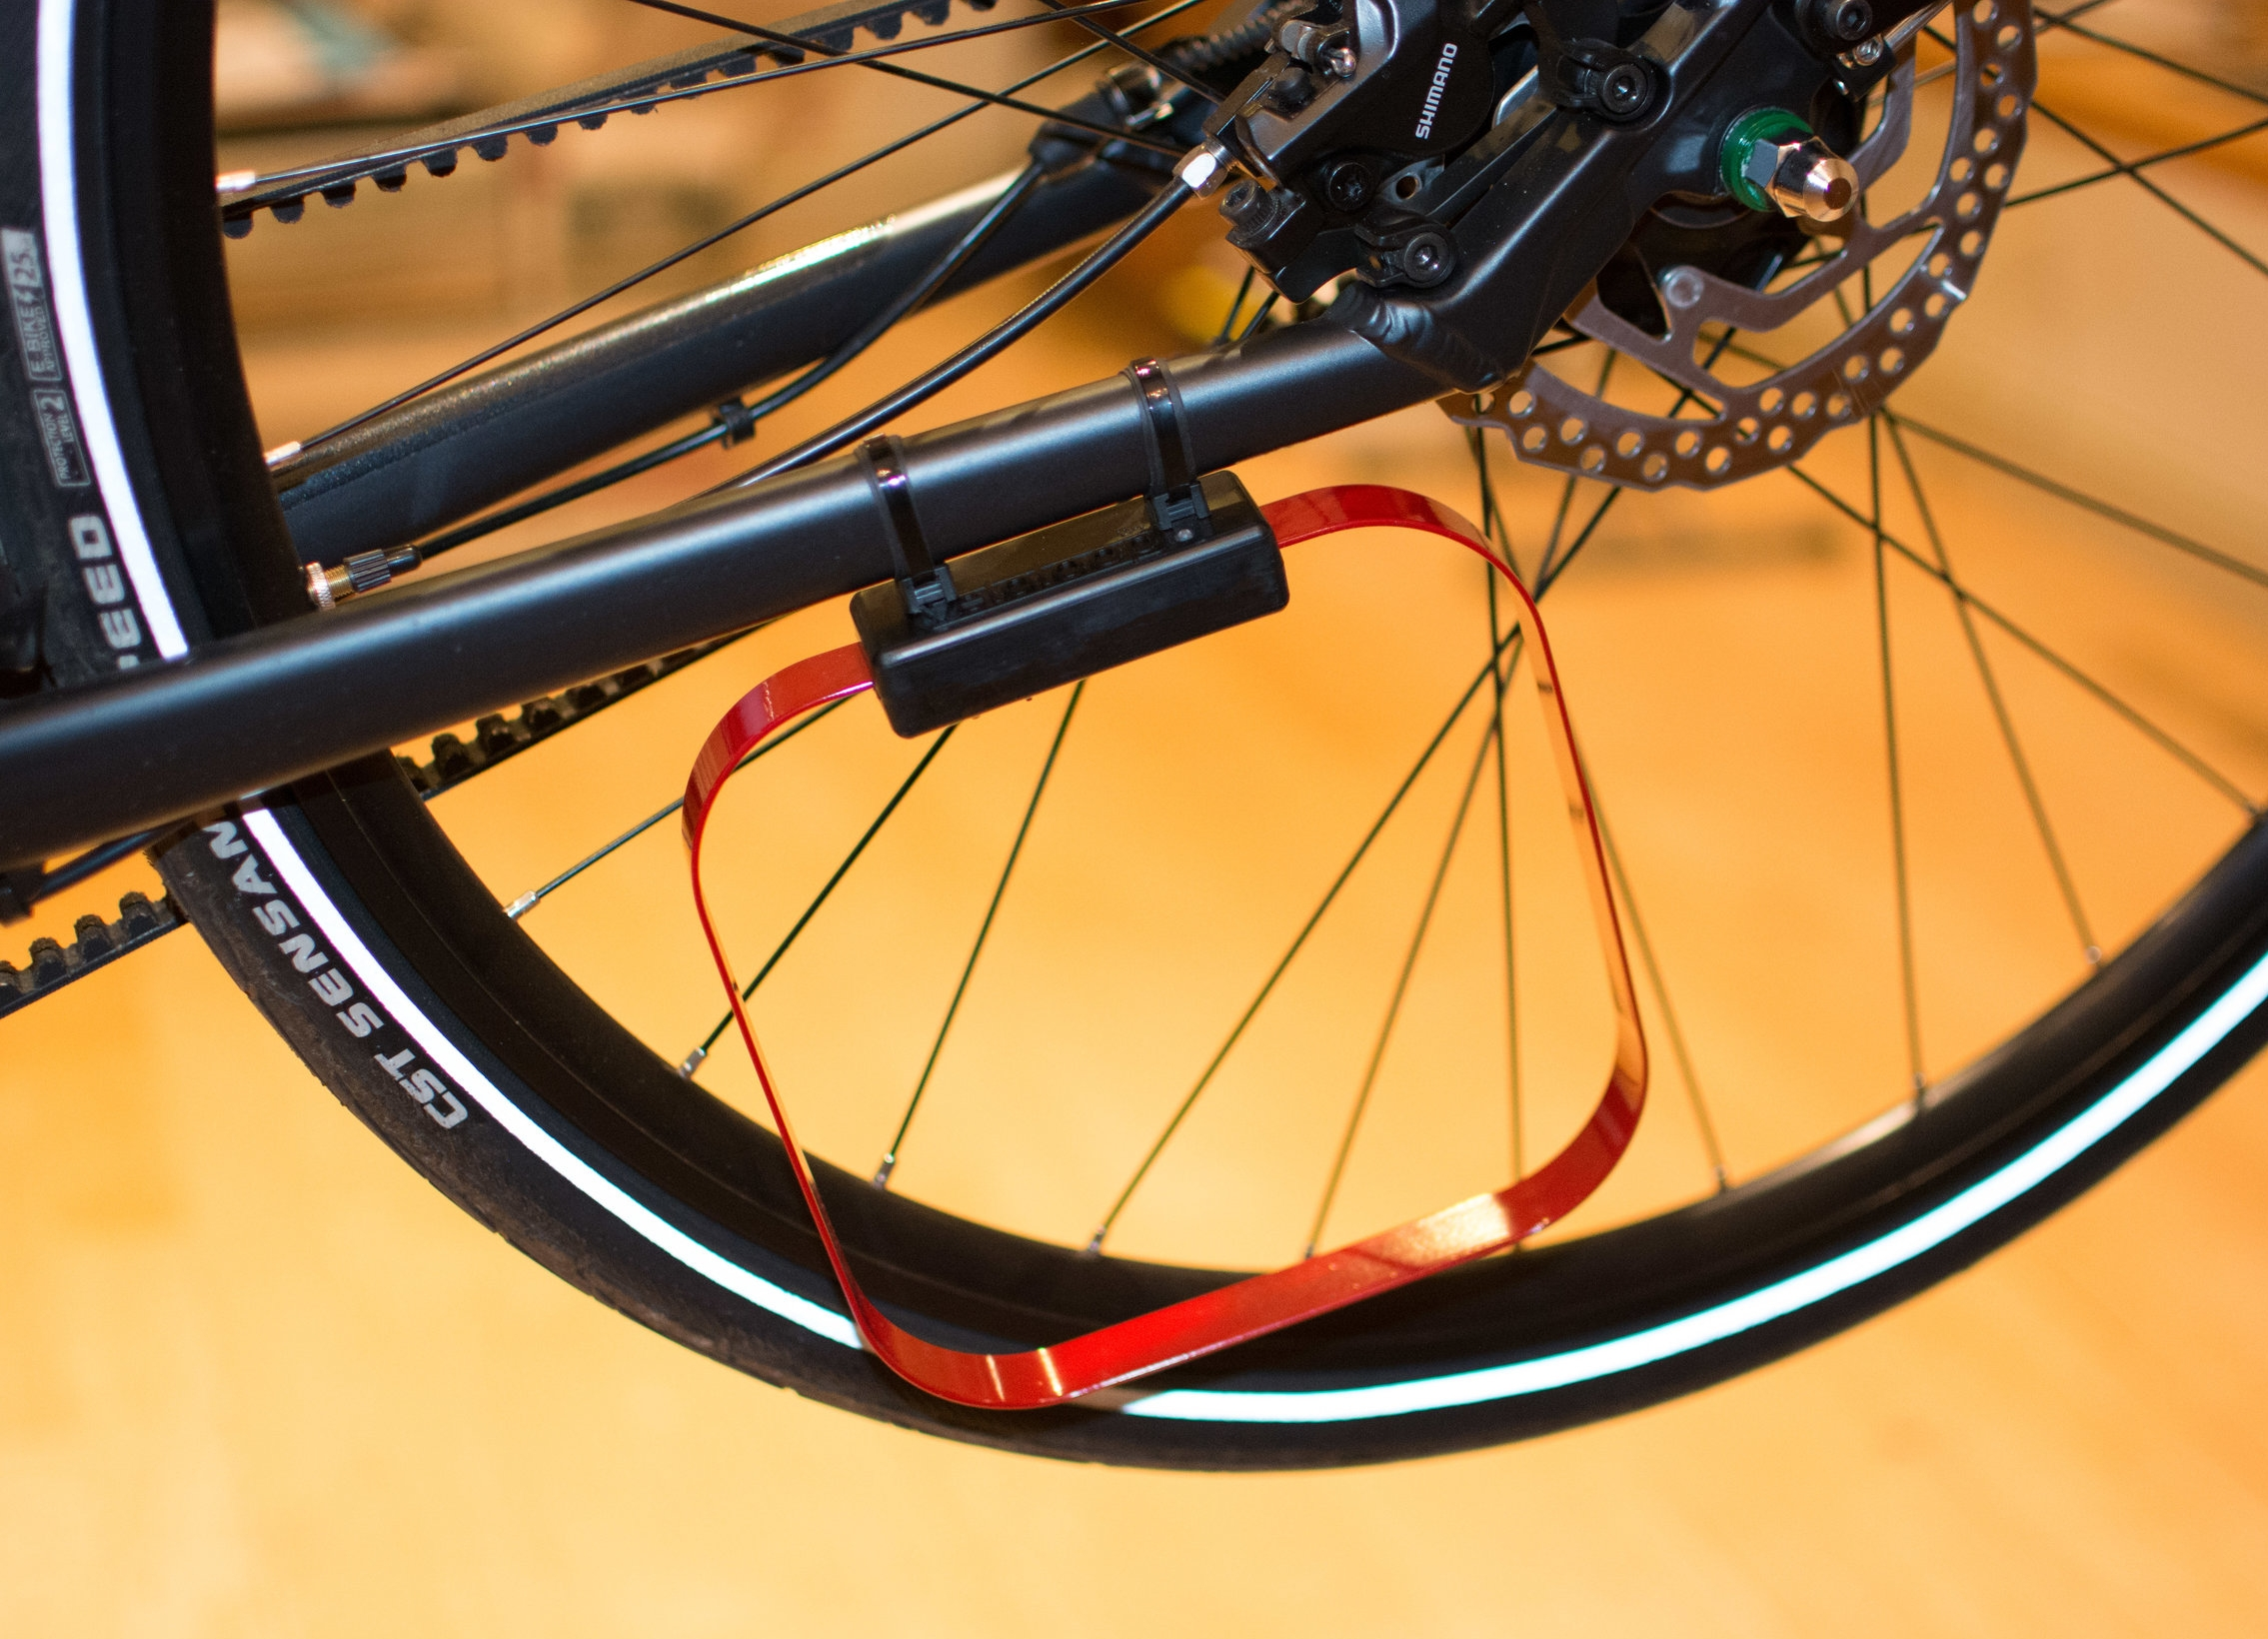 We can work with bike designers and manufacturers to make streamlined mounting, eliminating the zip-ties.